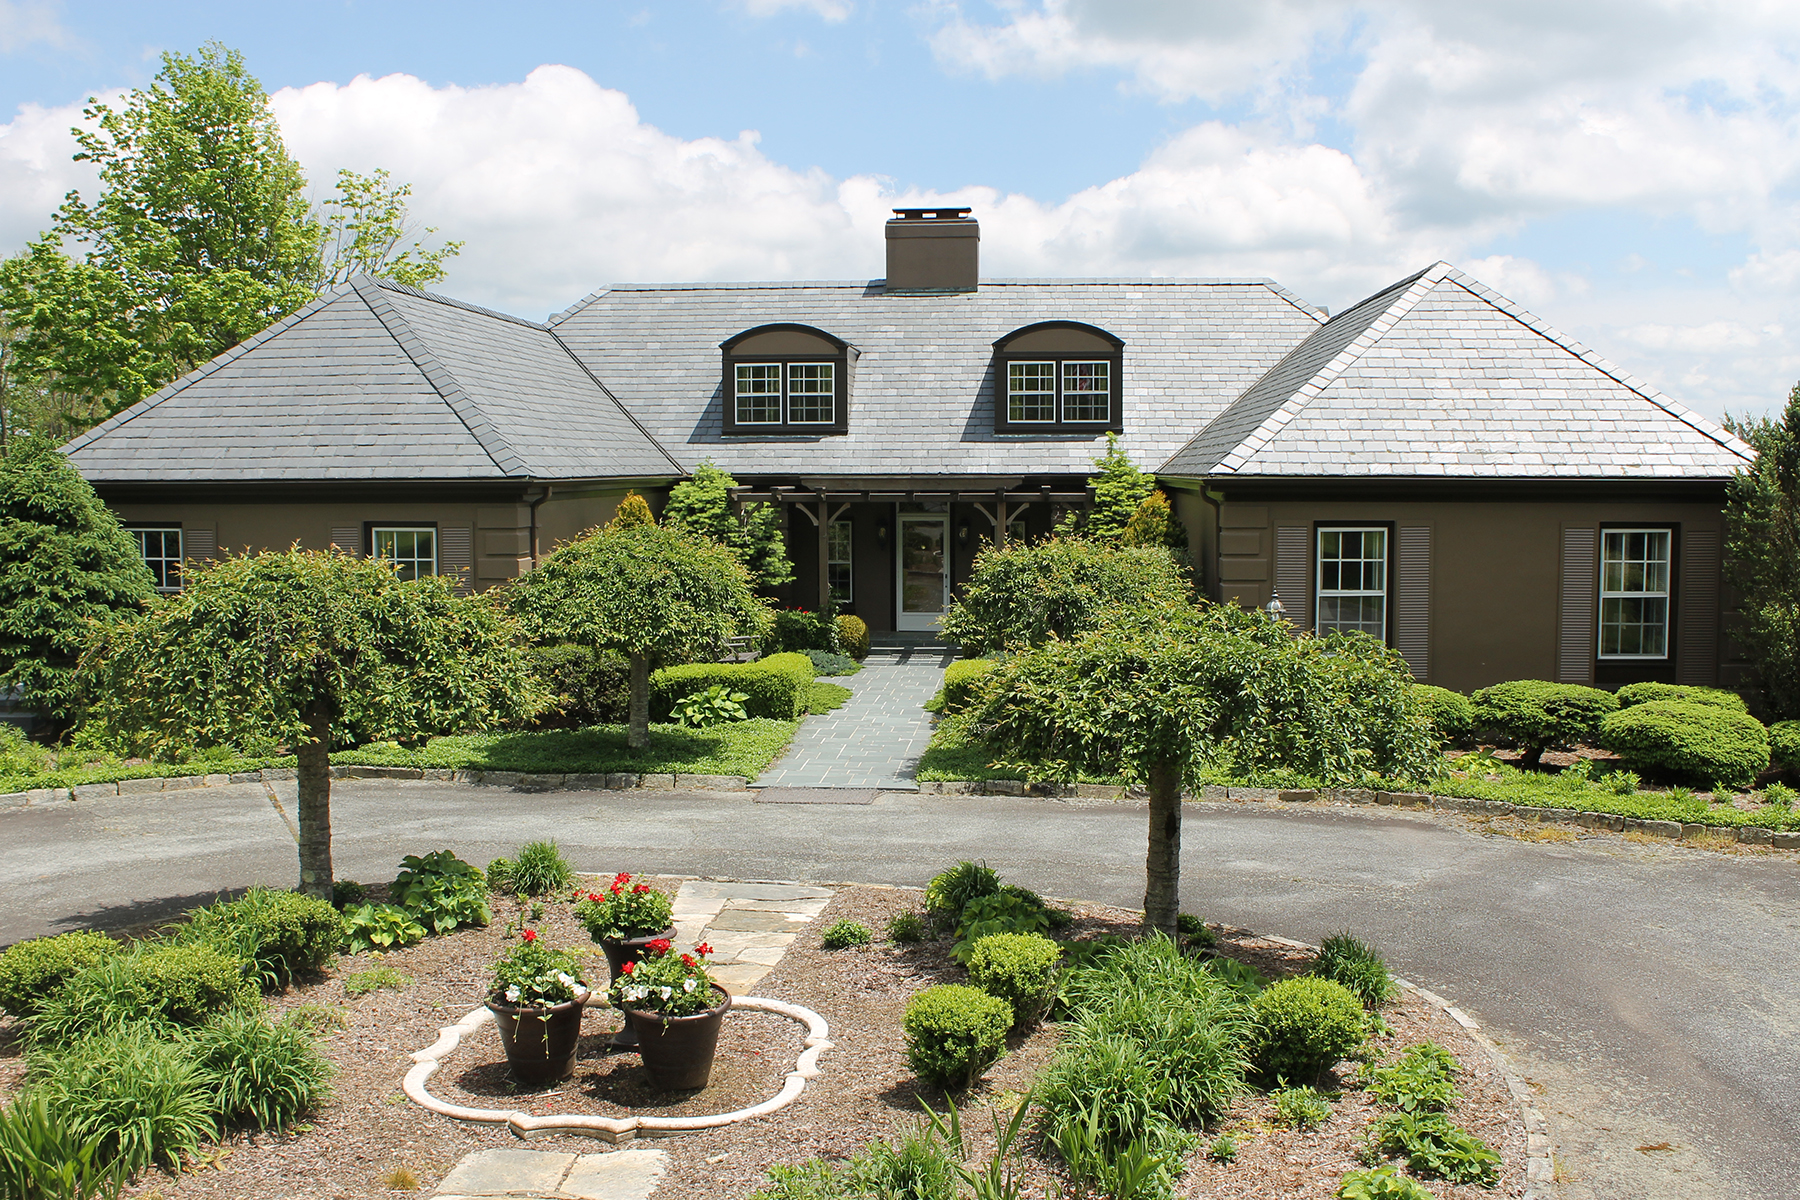 Single Family Home for Sale at BLOWING ROCK 1799 Flat Top Road Blowing Rock, North Carolina, 28605 United States